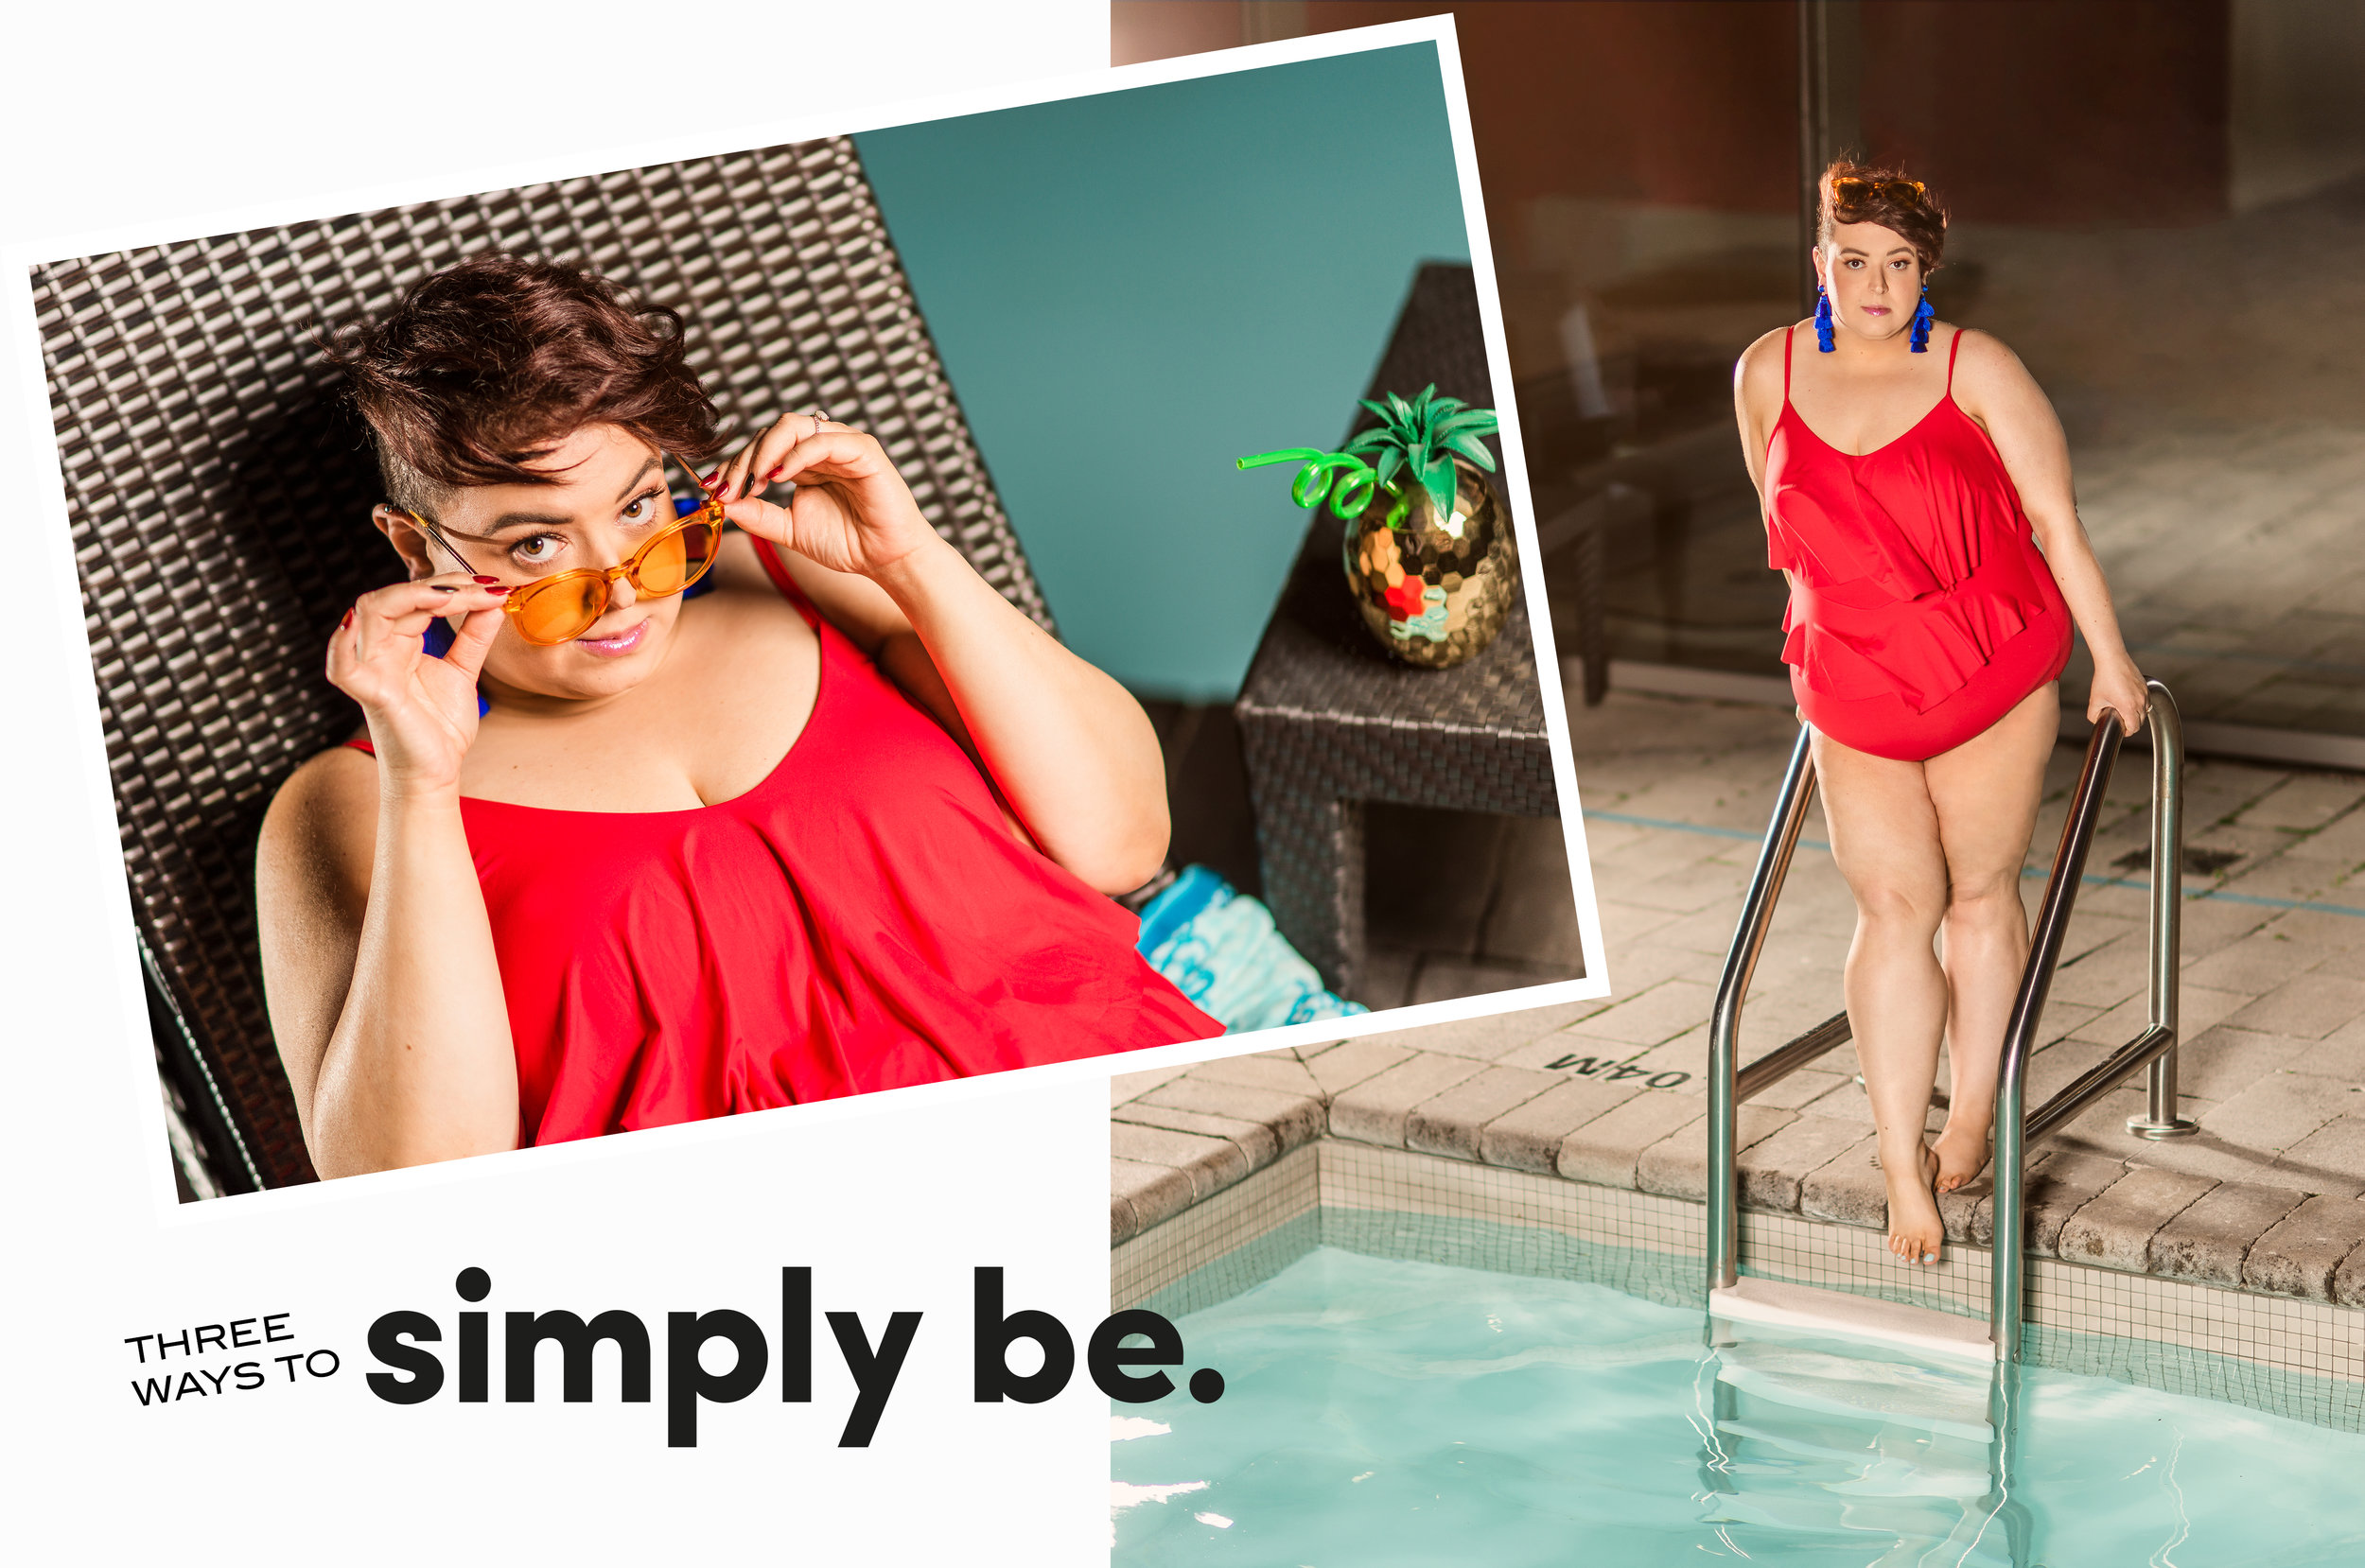 swimsuit  - c/o Simply Be US | glasses - Aldo Accessories | earrings - BaubleBar